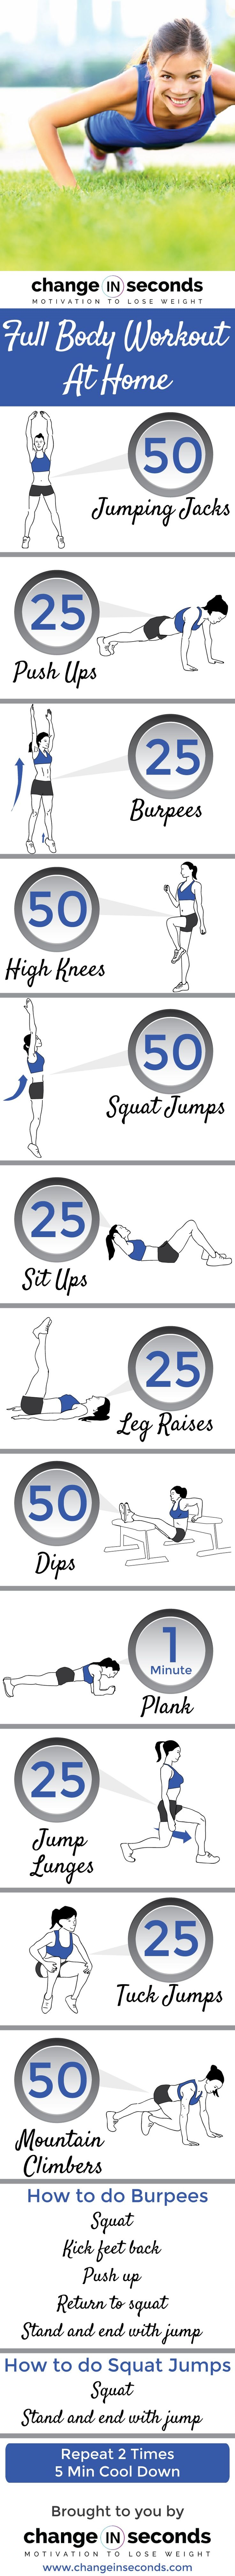 DownloadFull Body Workout At Home PDF   List of exercises for the full body workout at home:  50 Jumping Jacks 25 Push Ups 25 Burpees 50 High Knees 50 Squat Jumps 25 Sit Ups 25 Leg Raises 50 Dips 1 Minute Plank 25 Jump Lunges 25 Tuck Jumps 50 Mountain Climbers  Instructions: